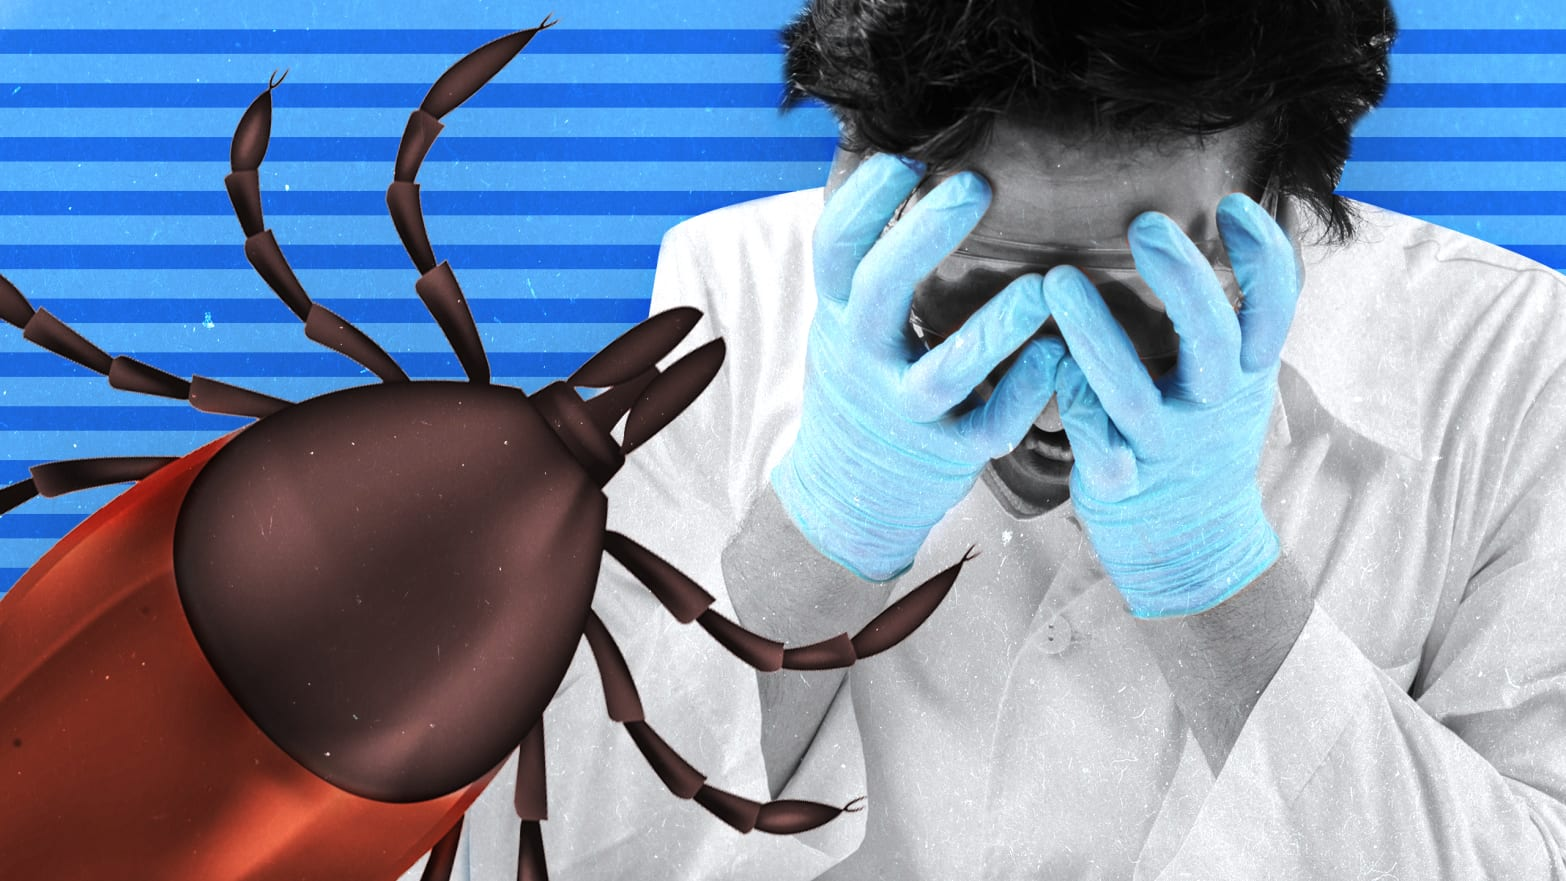 giant tick crawling overdoctor whose hands are in on his face in distress shock fear asian longhorned east tick lyme disease